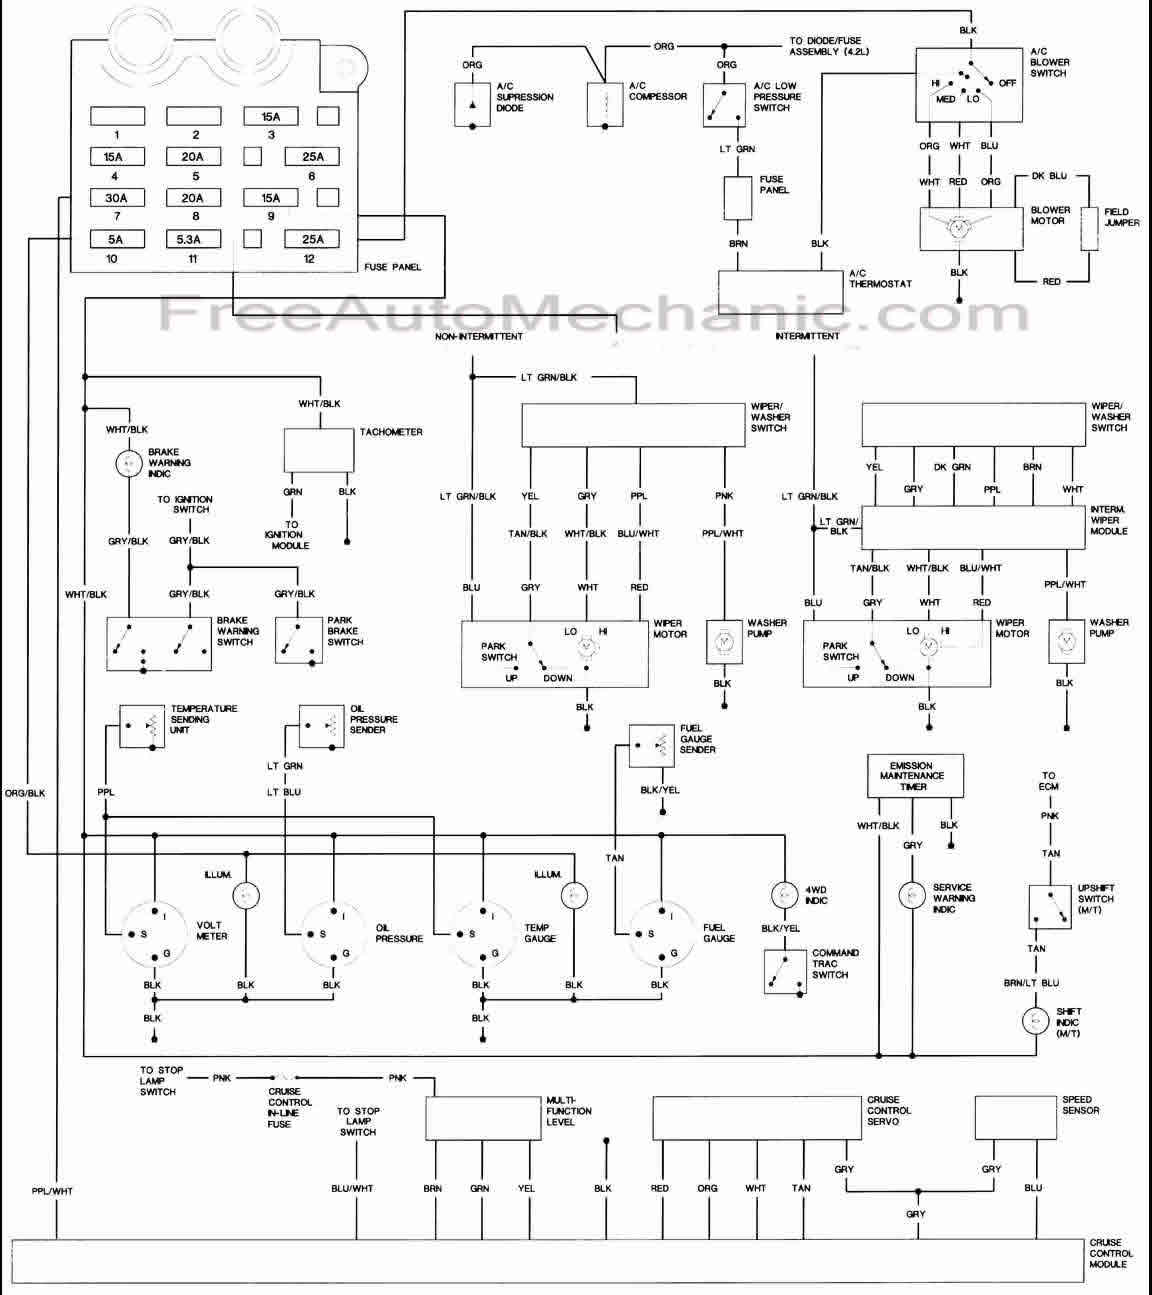 Wiring Diagram For 2006 Jeep Wrangler : Jeep wrangler body freeautomechanic